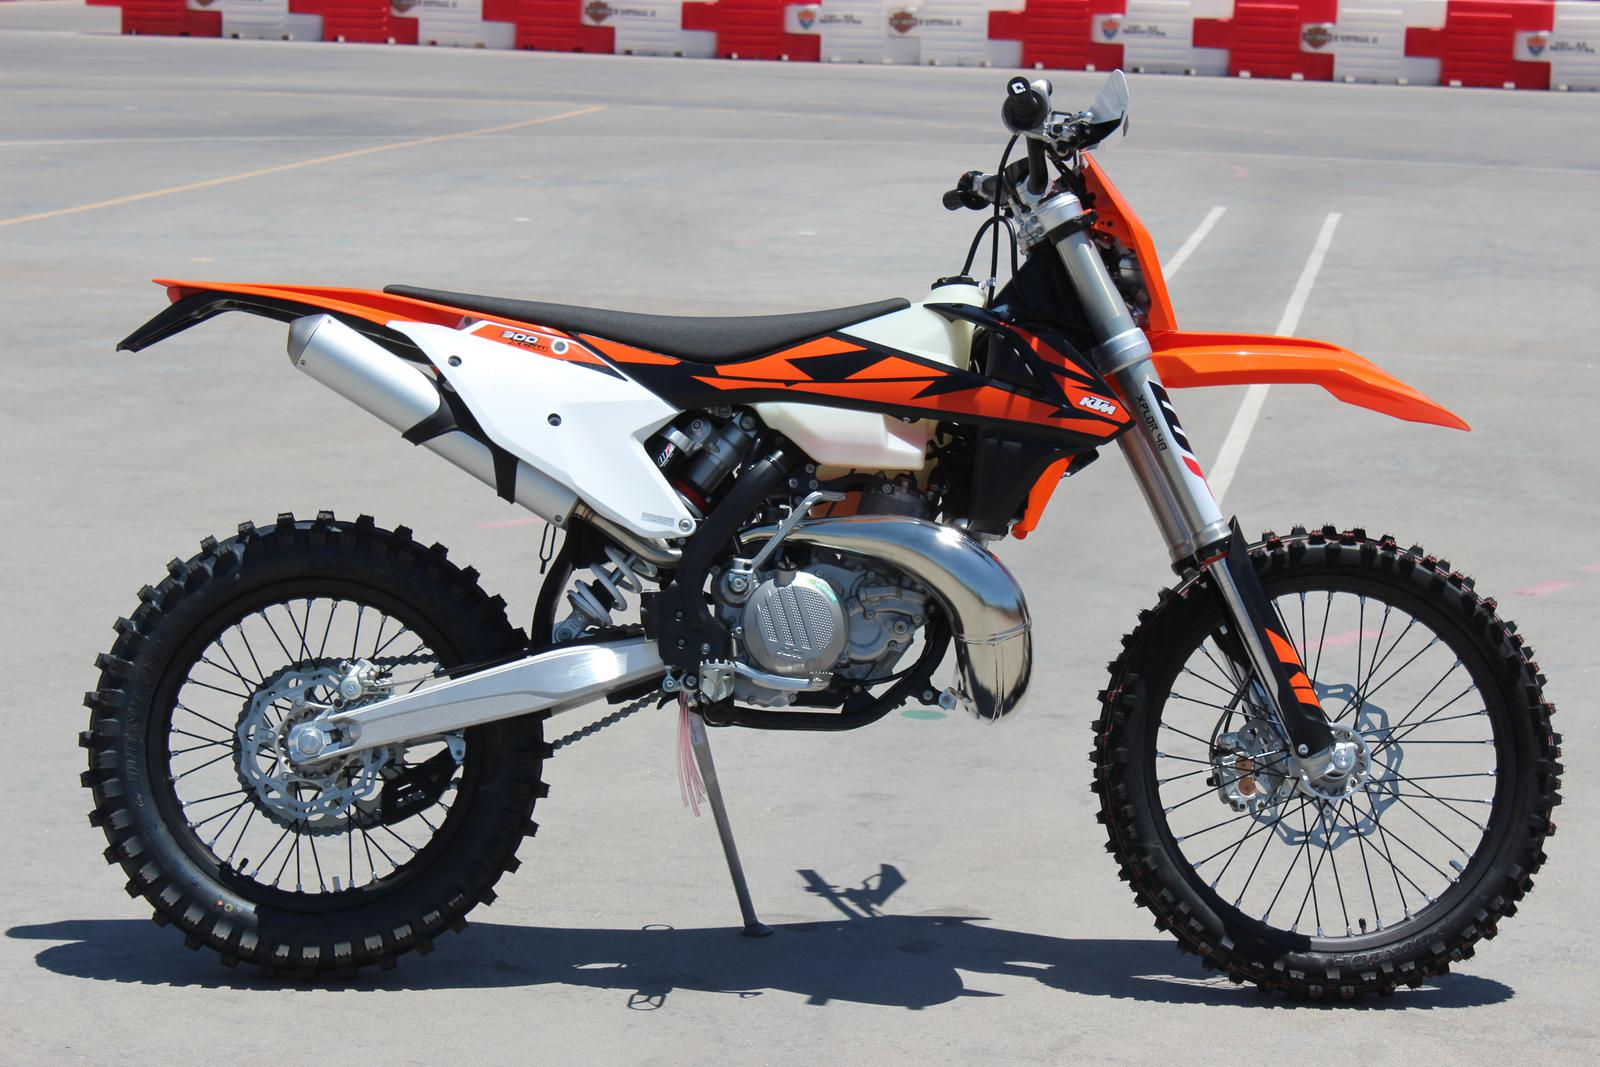 2018 KTM 300 XC W (13) 2018 ktm 300 xc w for sale in scottsdale, az go az motorcycles  at virtualis.co